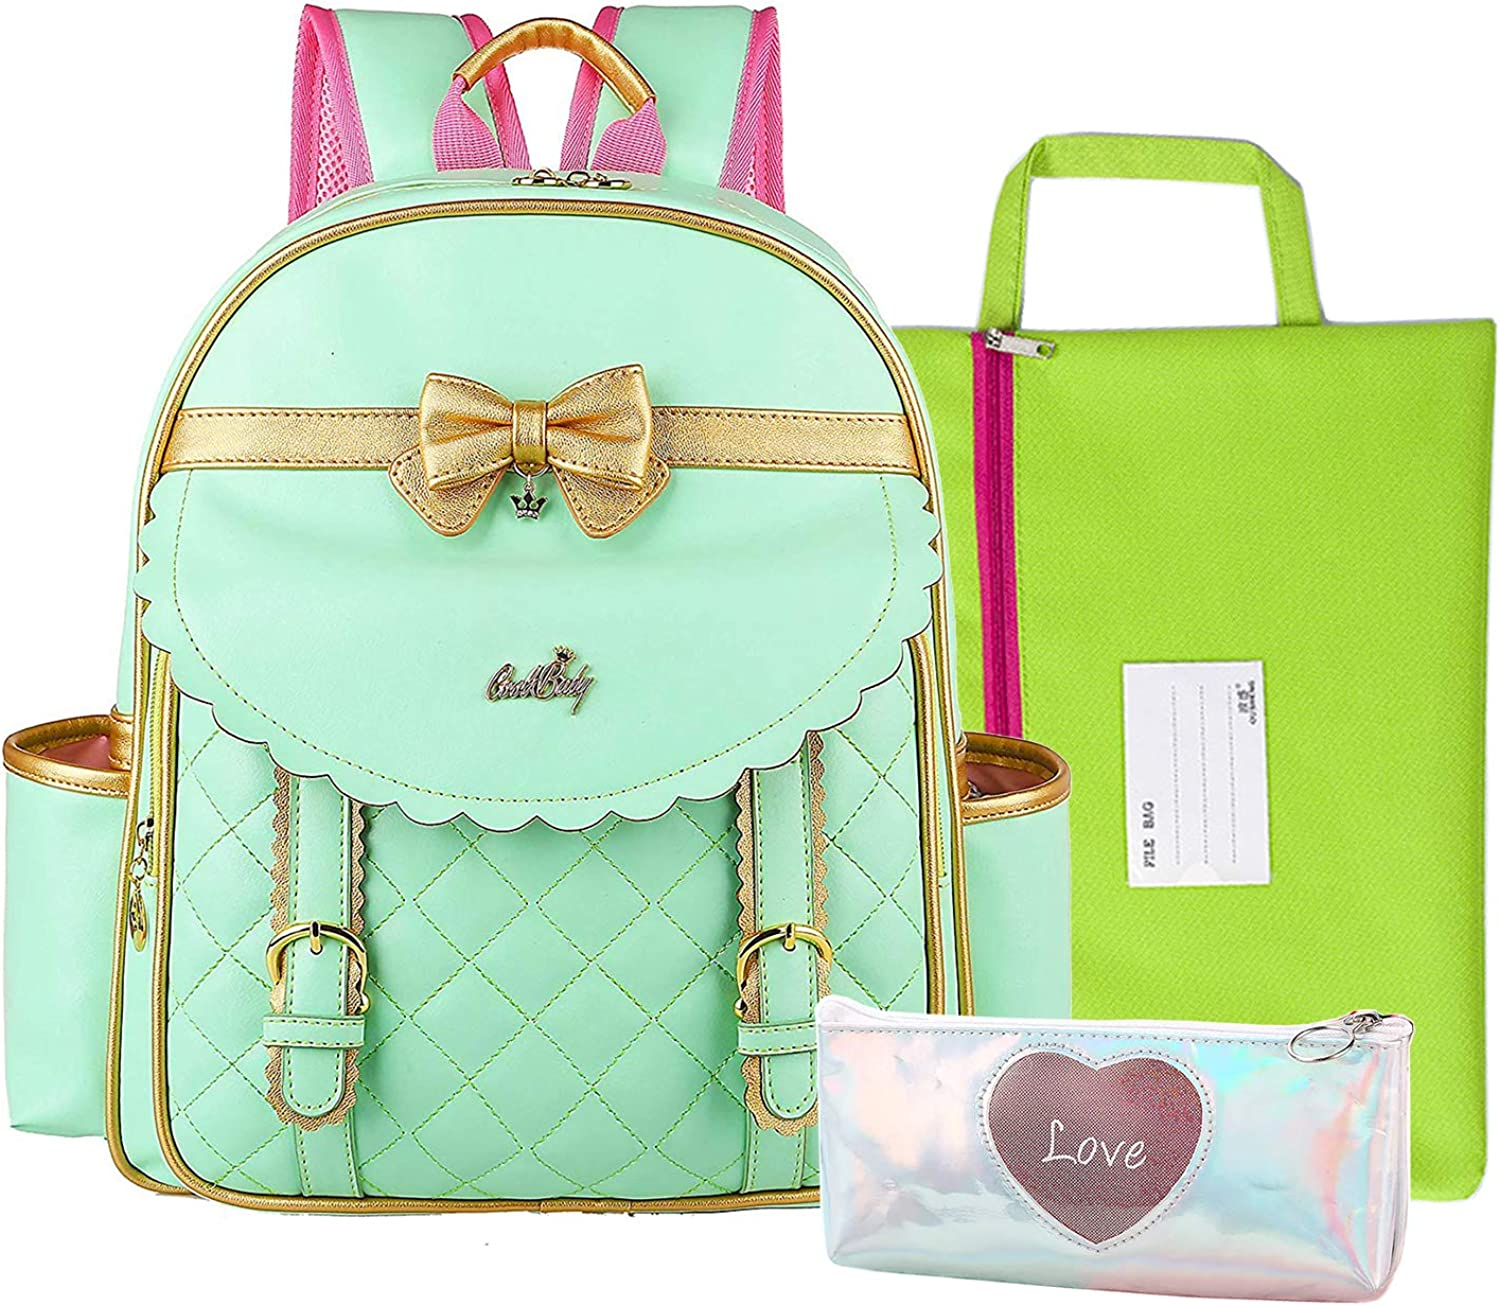 Watercolor Art Princess Toddler Backpack Bookbag Mini Shoulder Bag for 1-6 Years Travel Boys Girls Kids with Chest Strap Clip Whistle